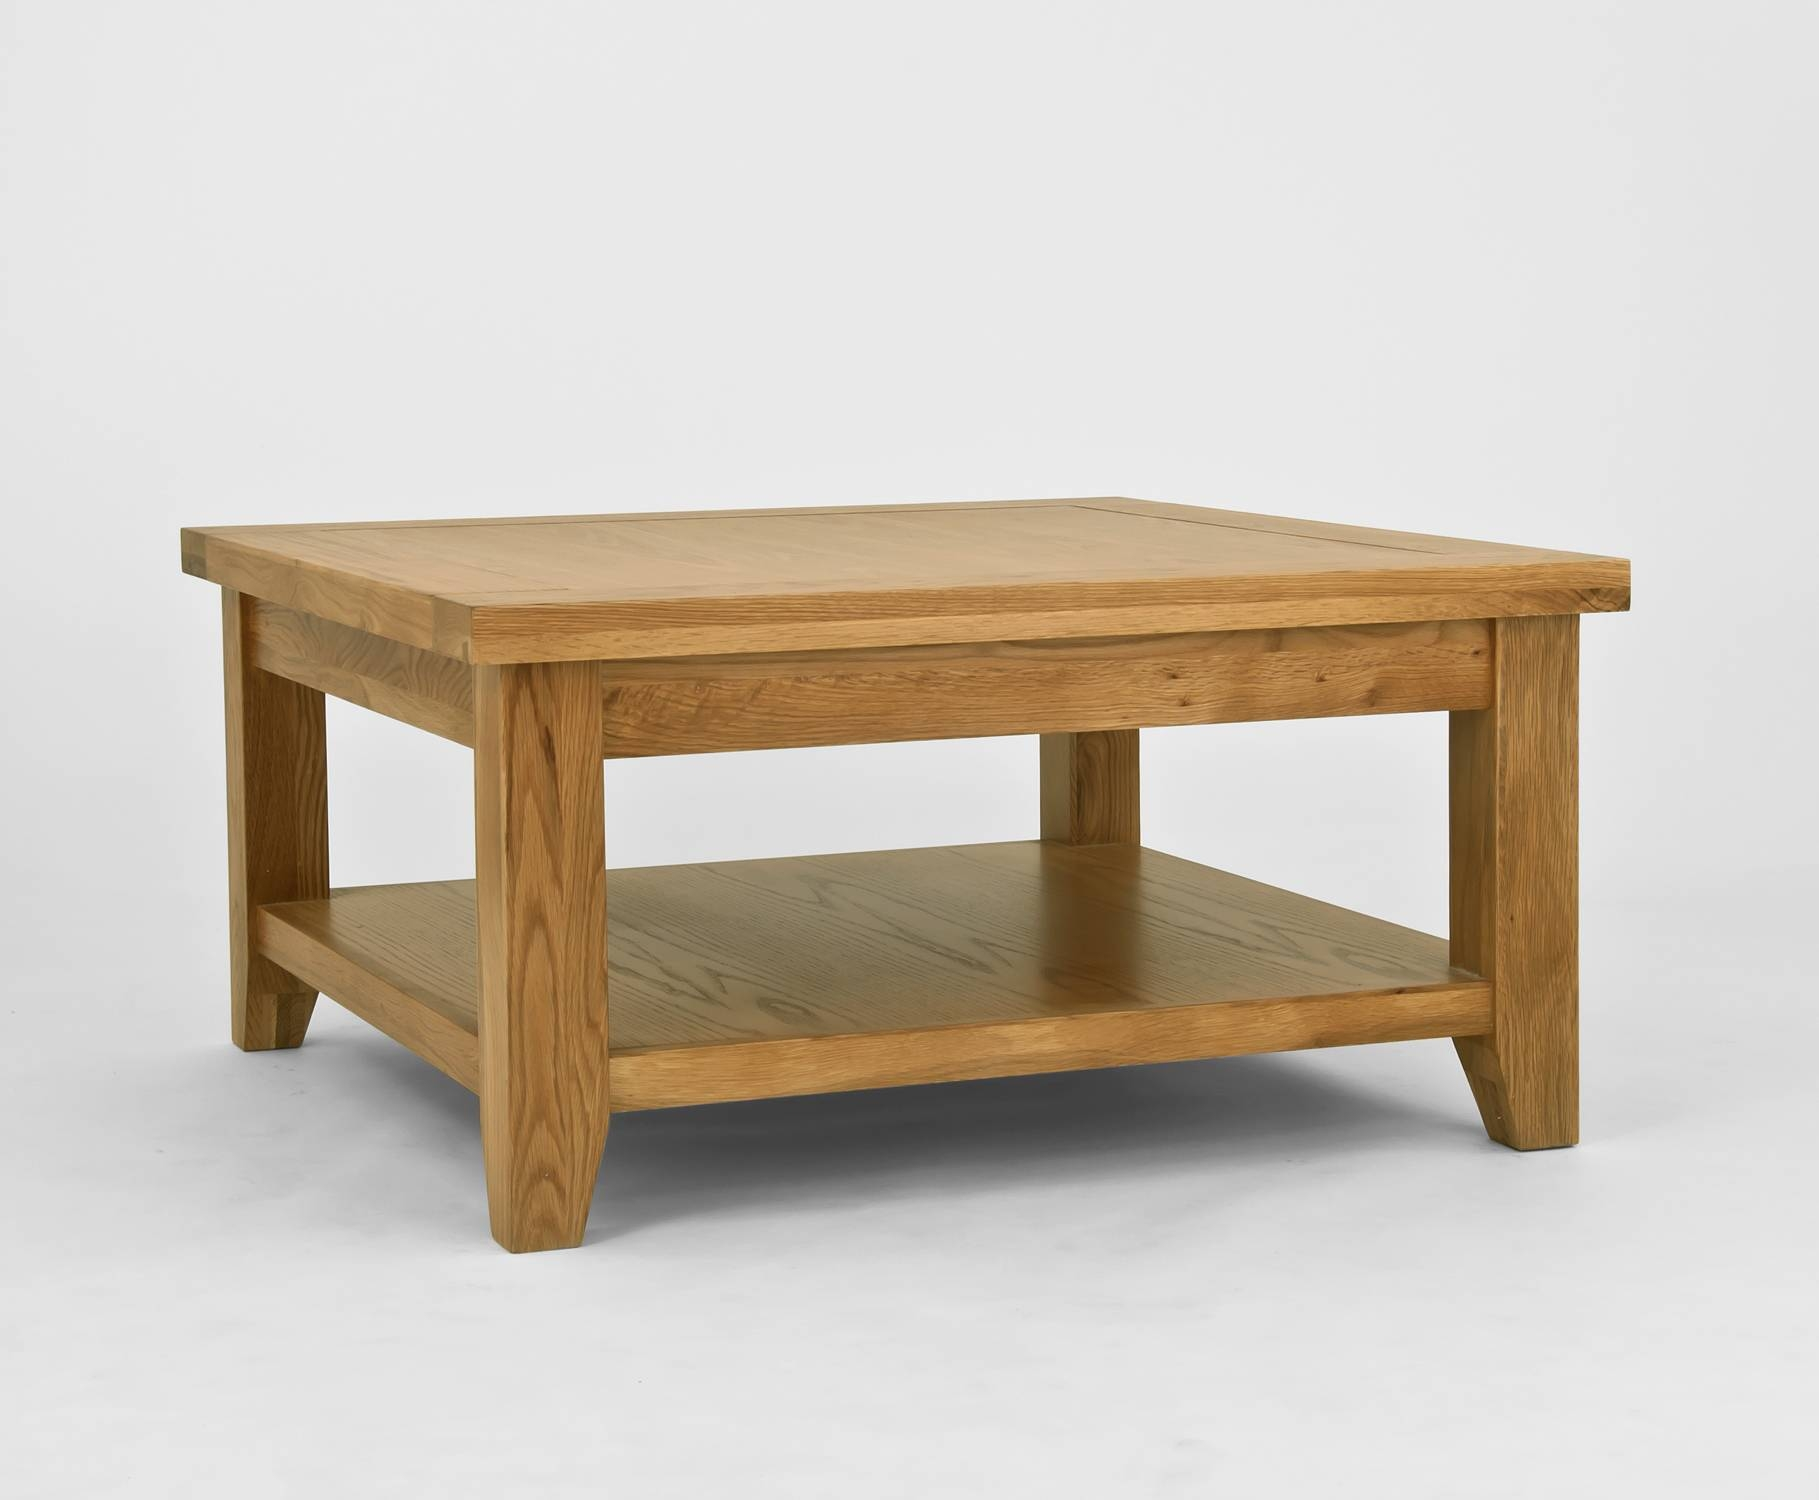 Solid Oak Coffee Table With Shelf | Coffee Tables Decoration regarding Square Pine Coffee Tables (Image 26 of 30)